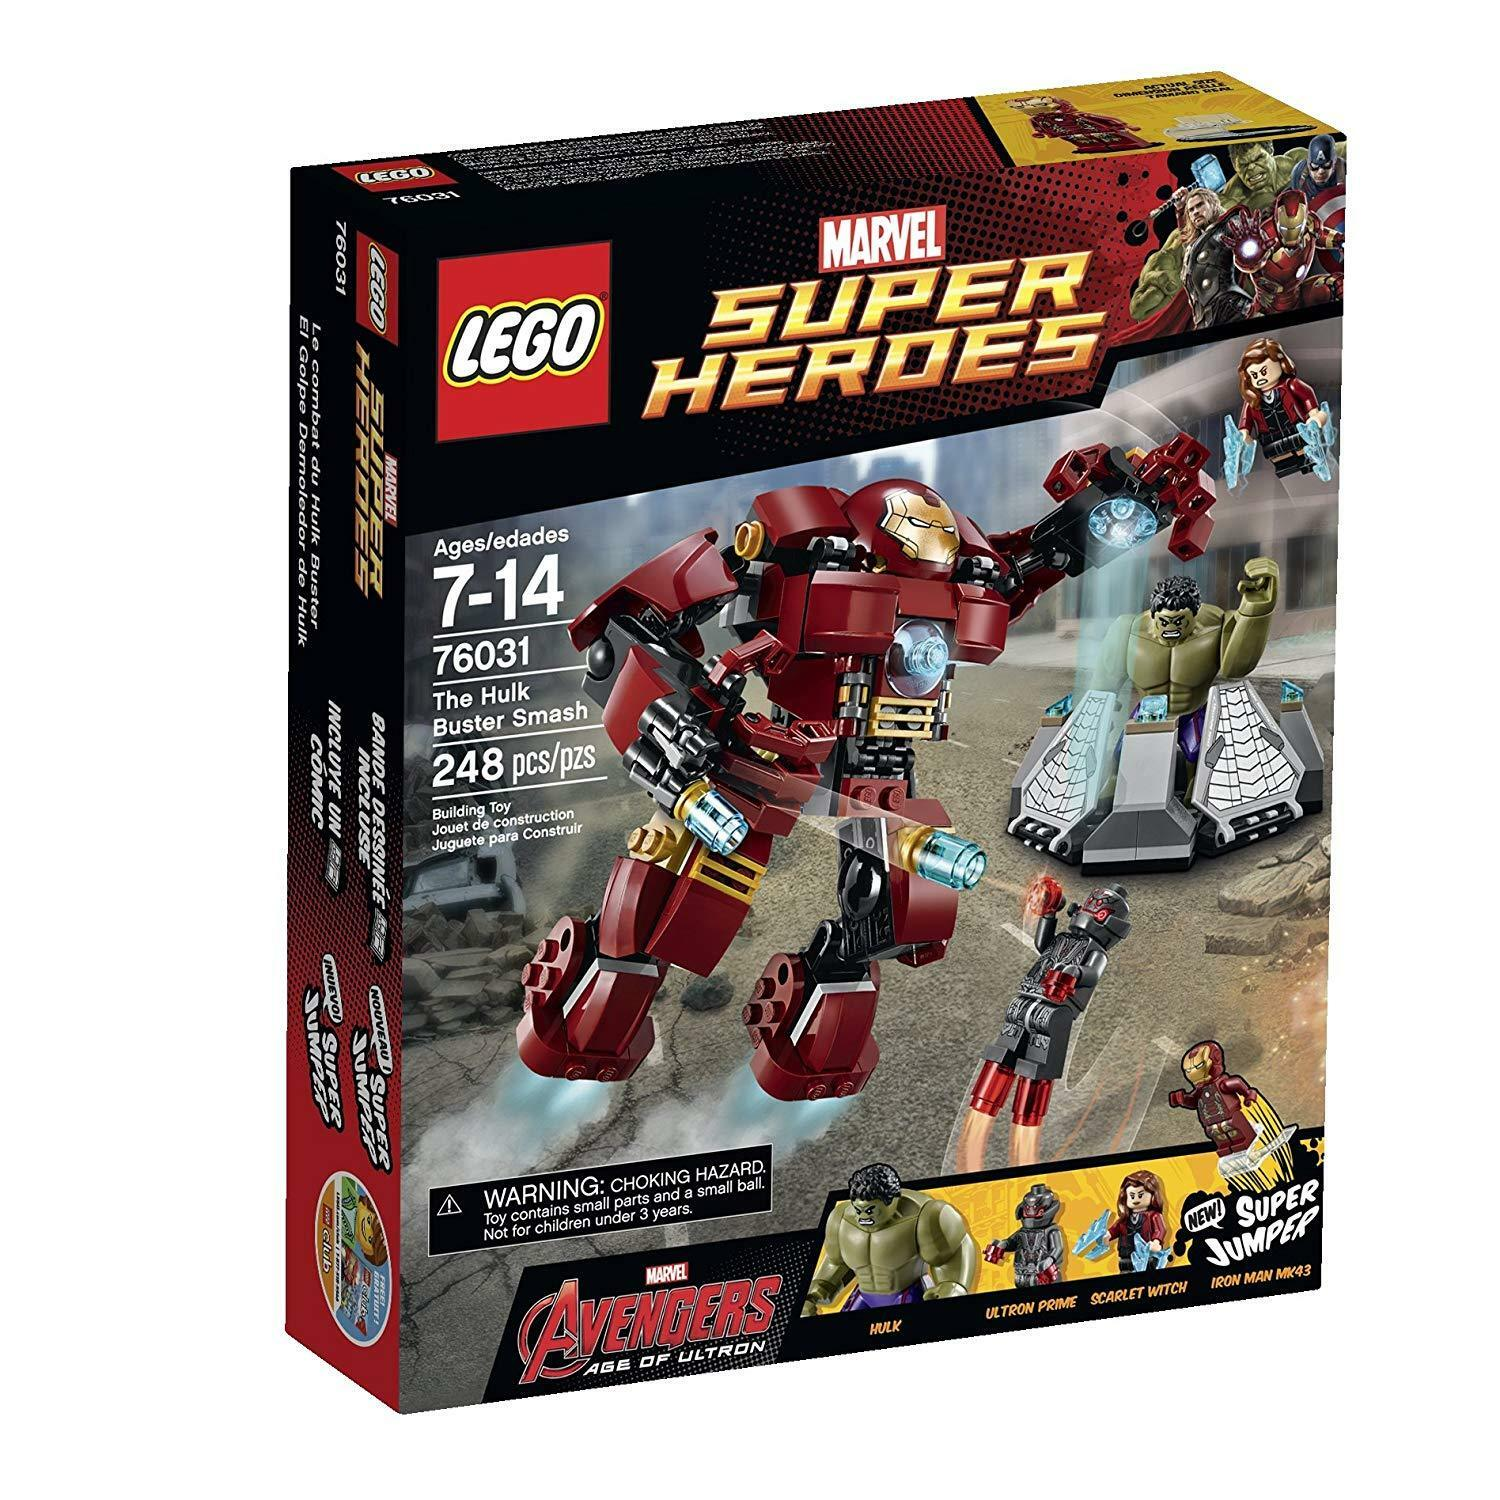 Lego DC Super Heroes 76031 The Hulk Buster Smash Marvel NISB